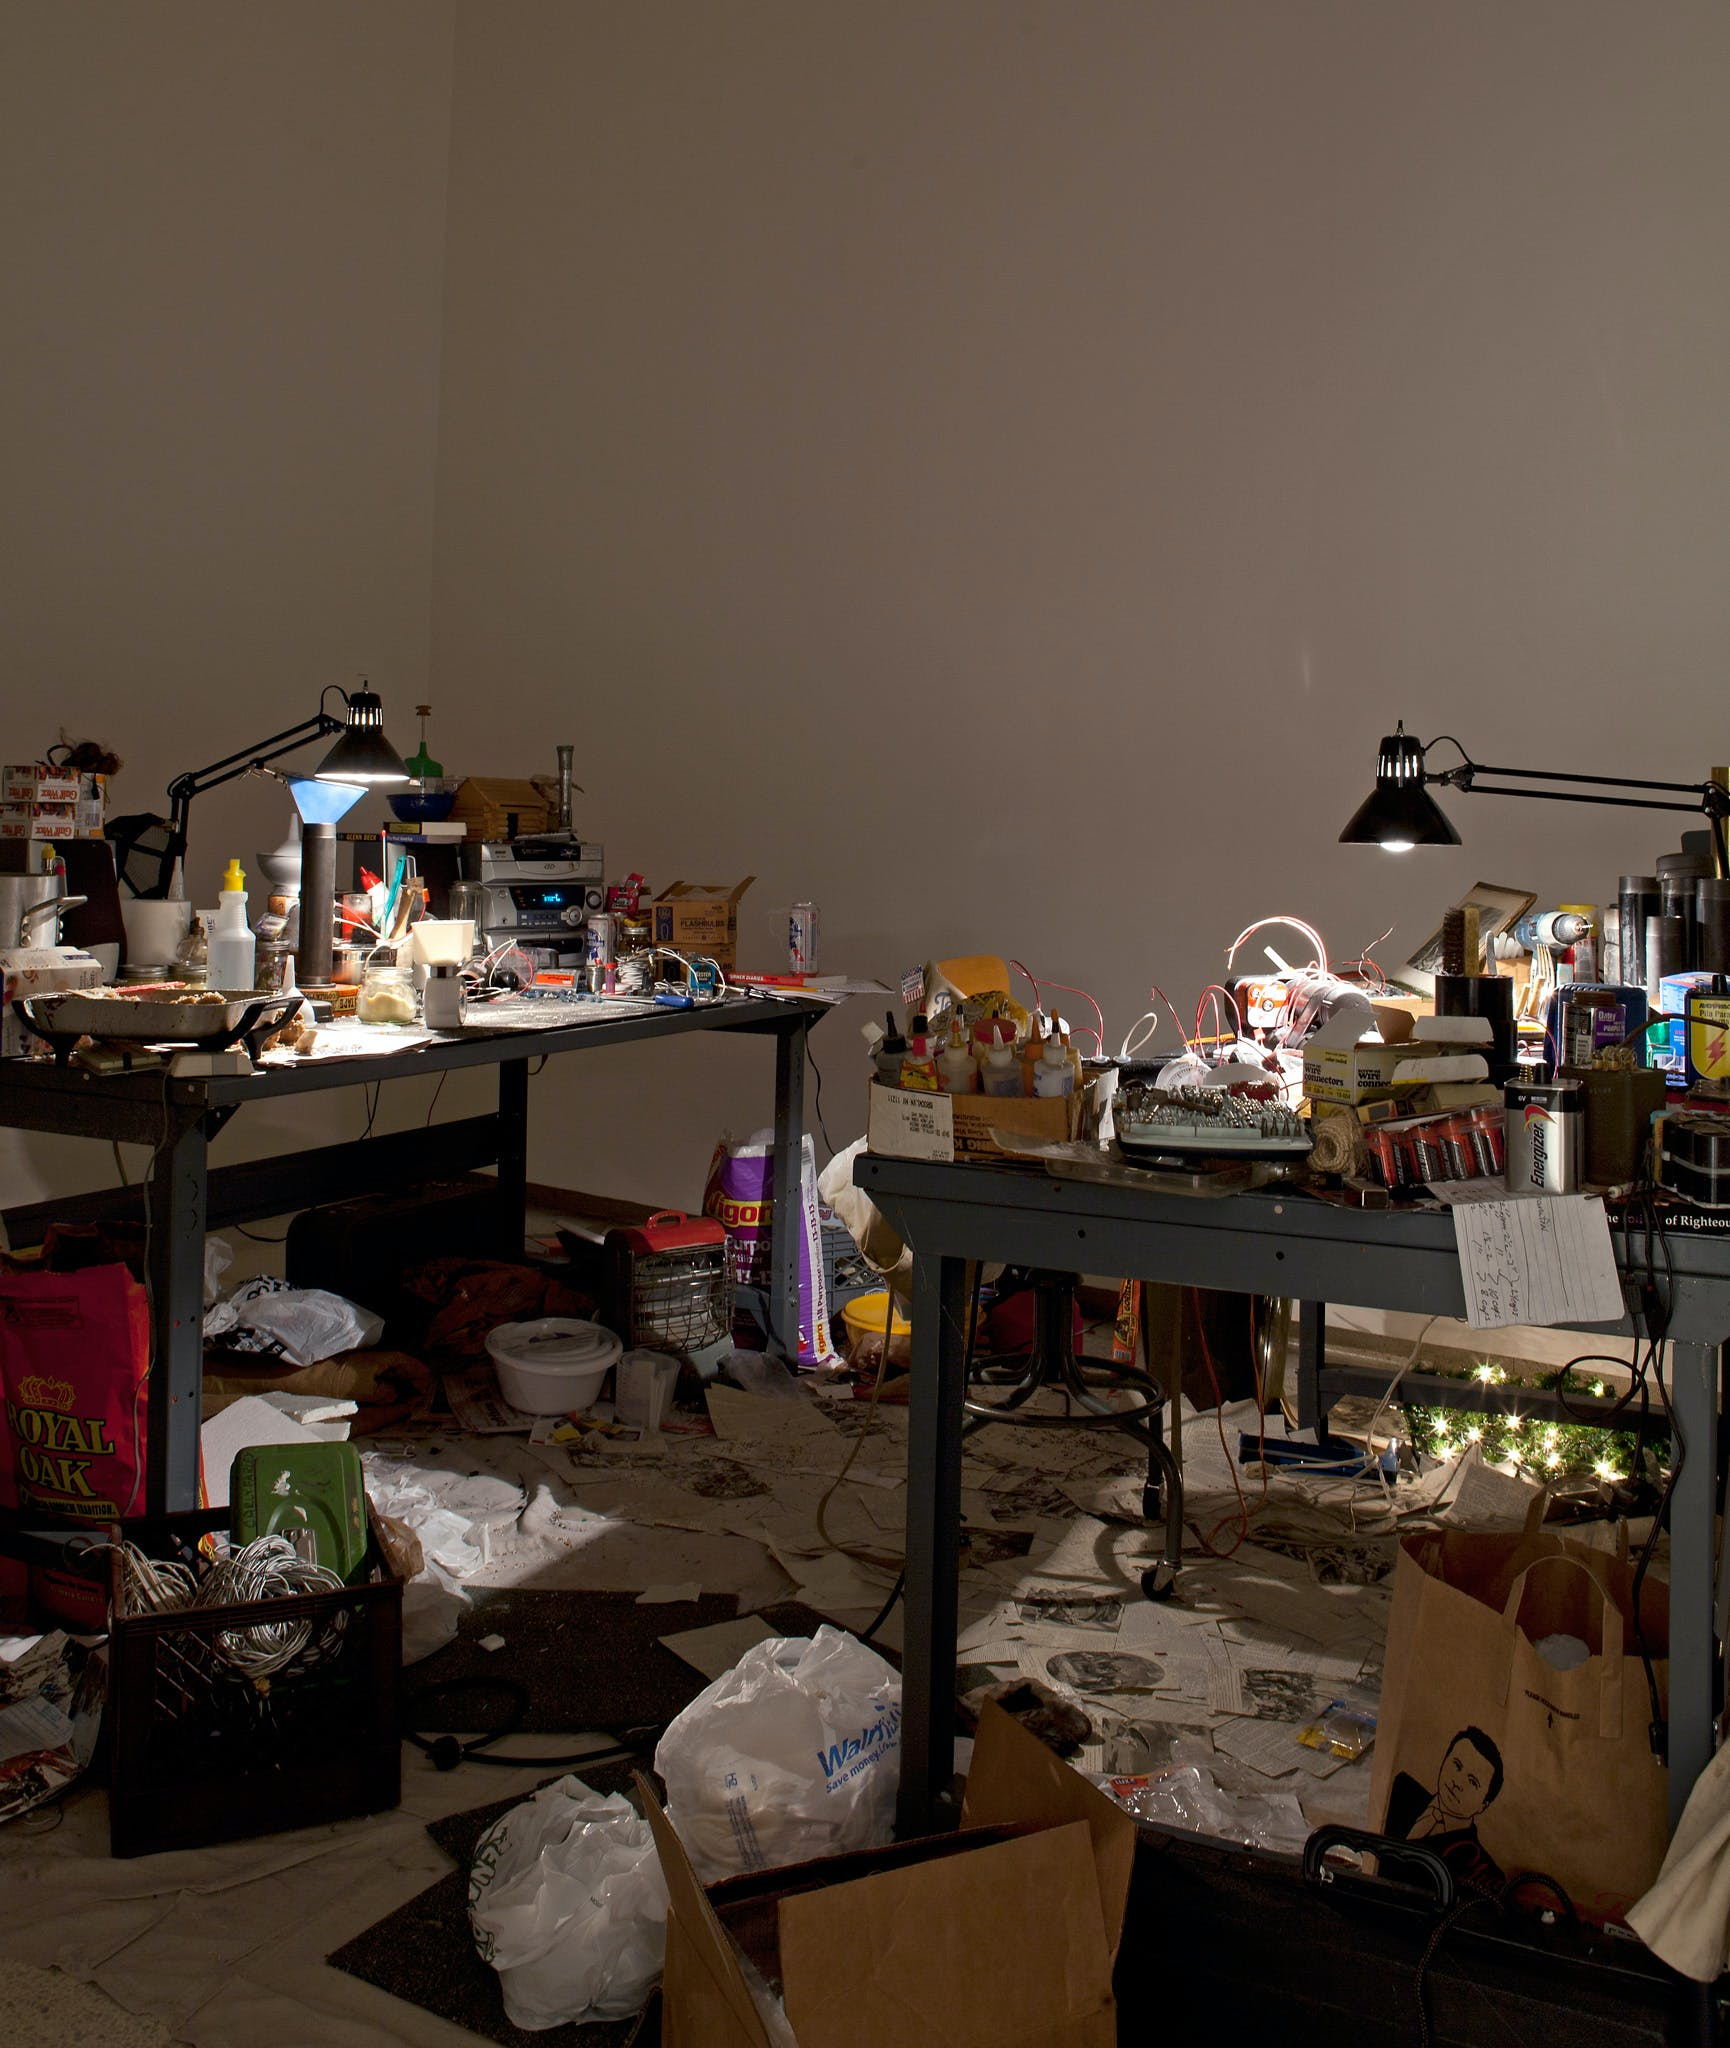 Installation view of the exhibition Absentee Landlord, 2011